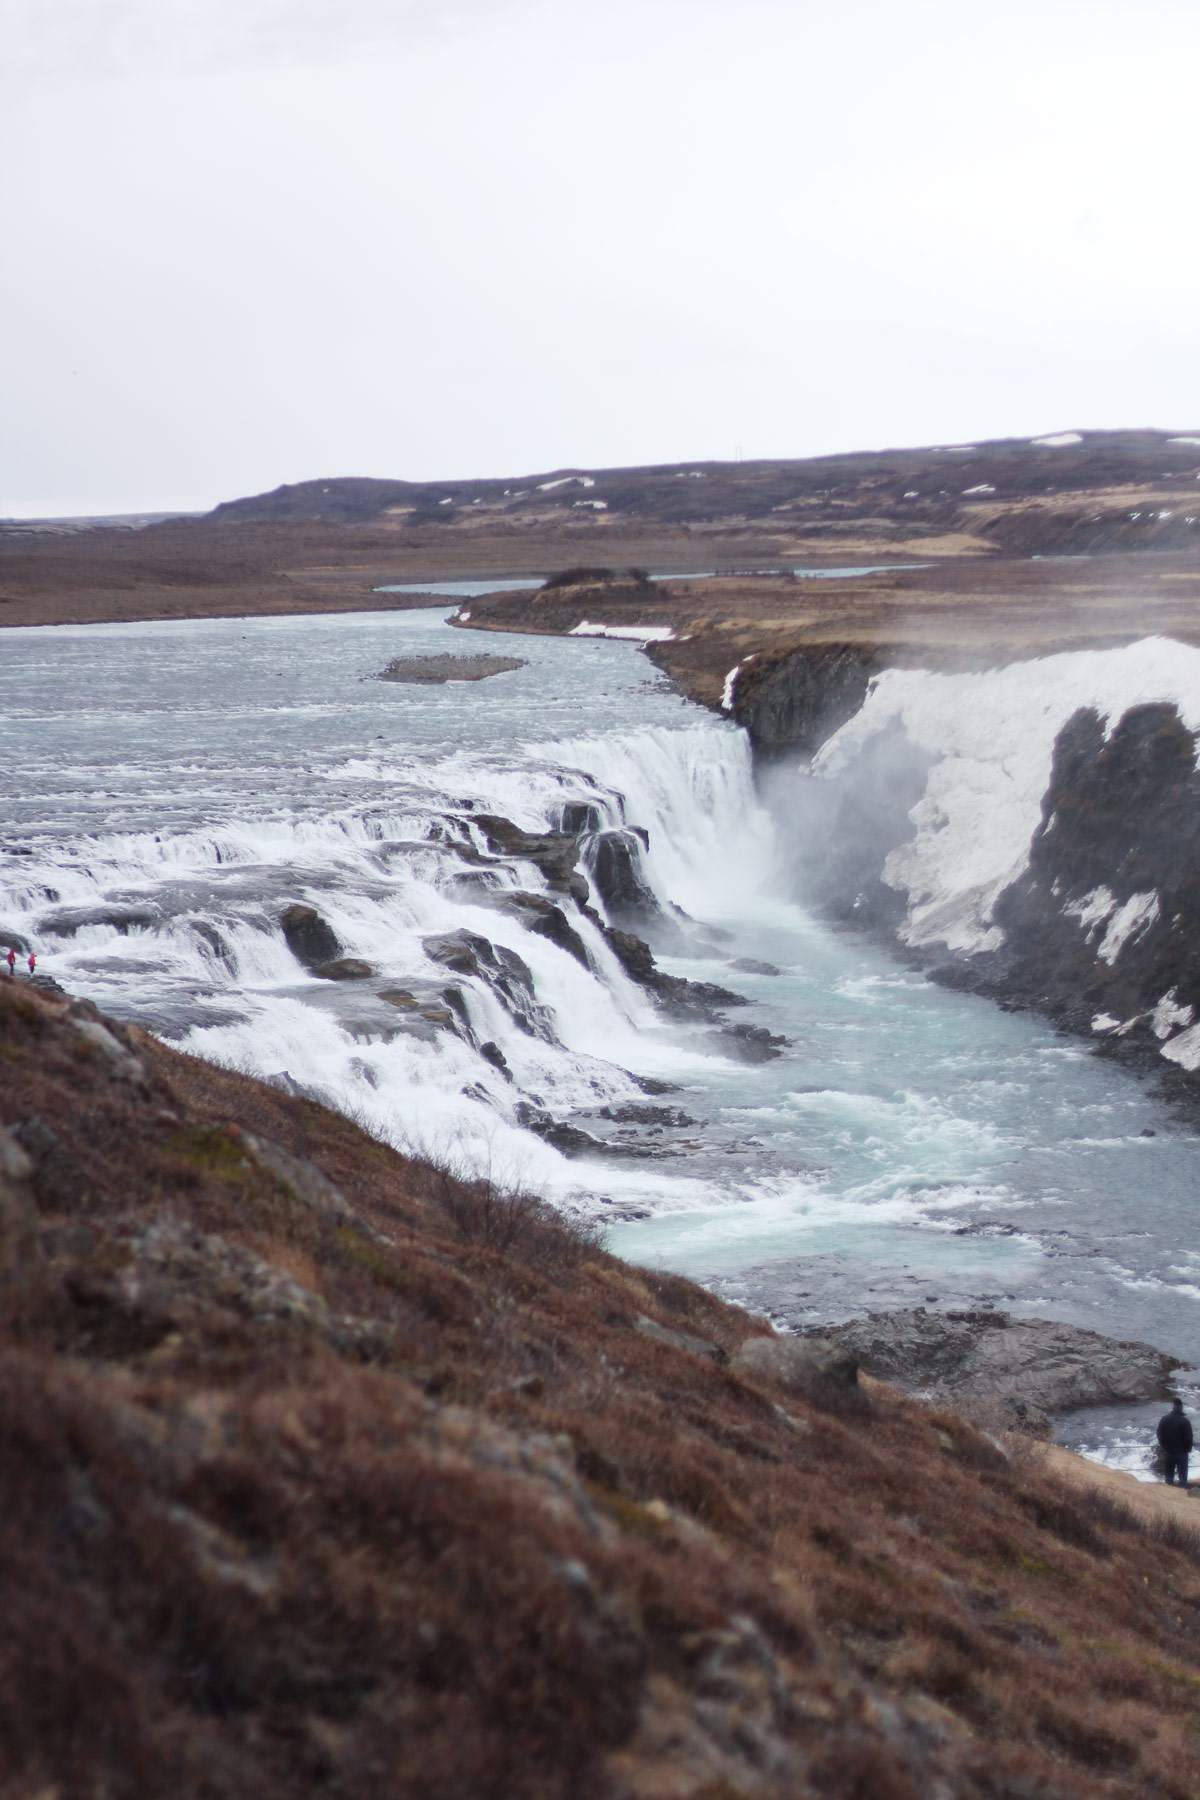 iceland-reykjavik-keflavik-review-photo-diary-travel-blog-golden-circle-tour-gullfoss-waterfall